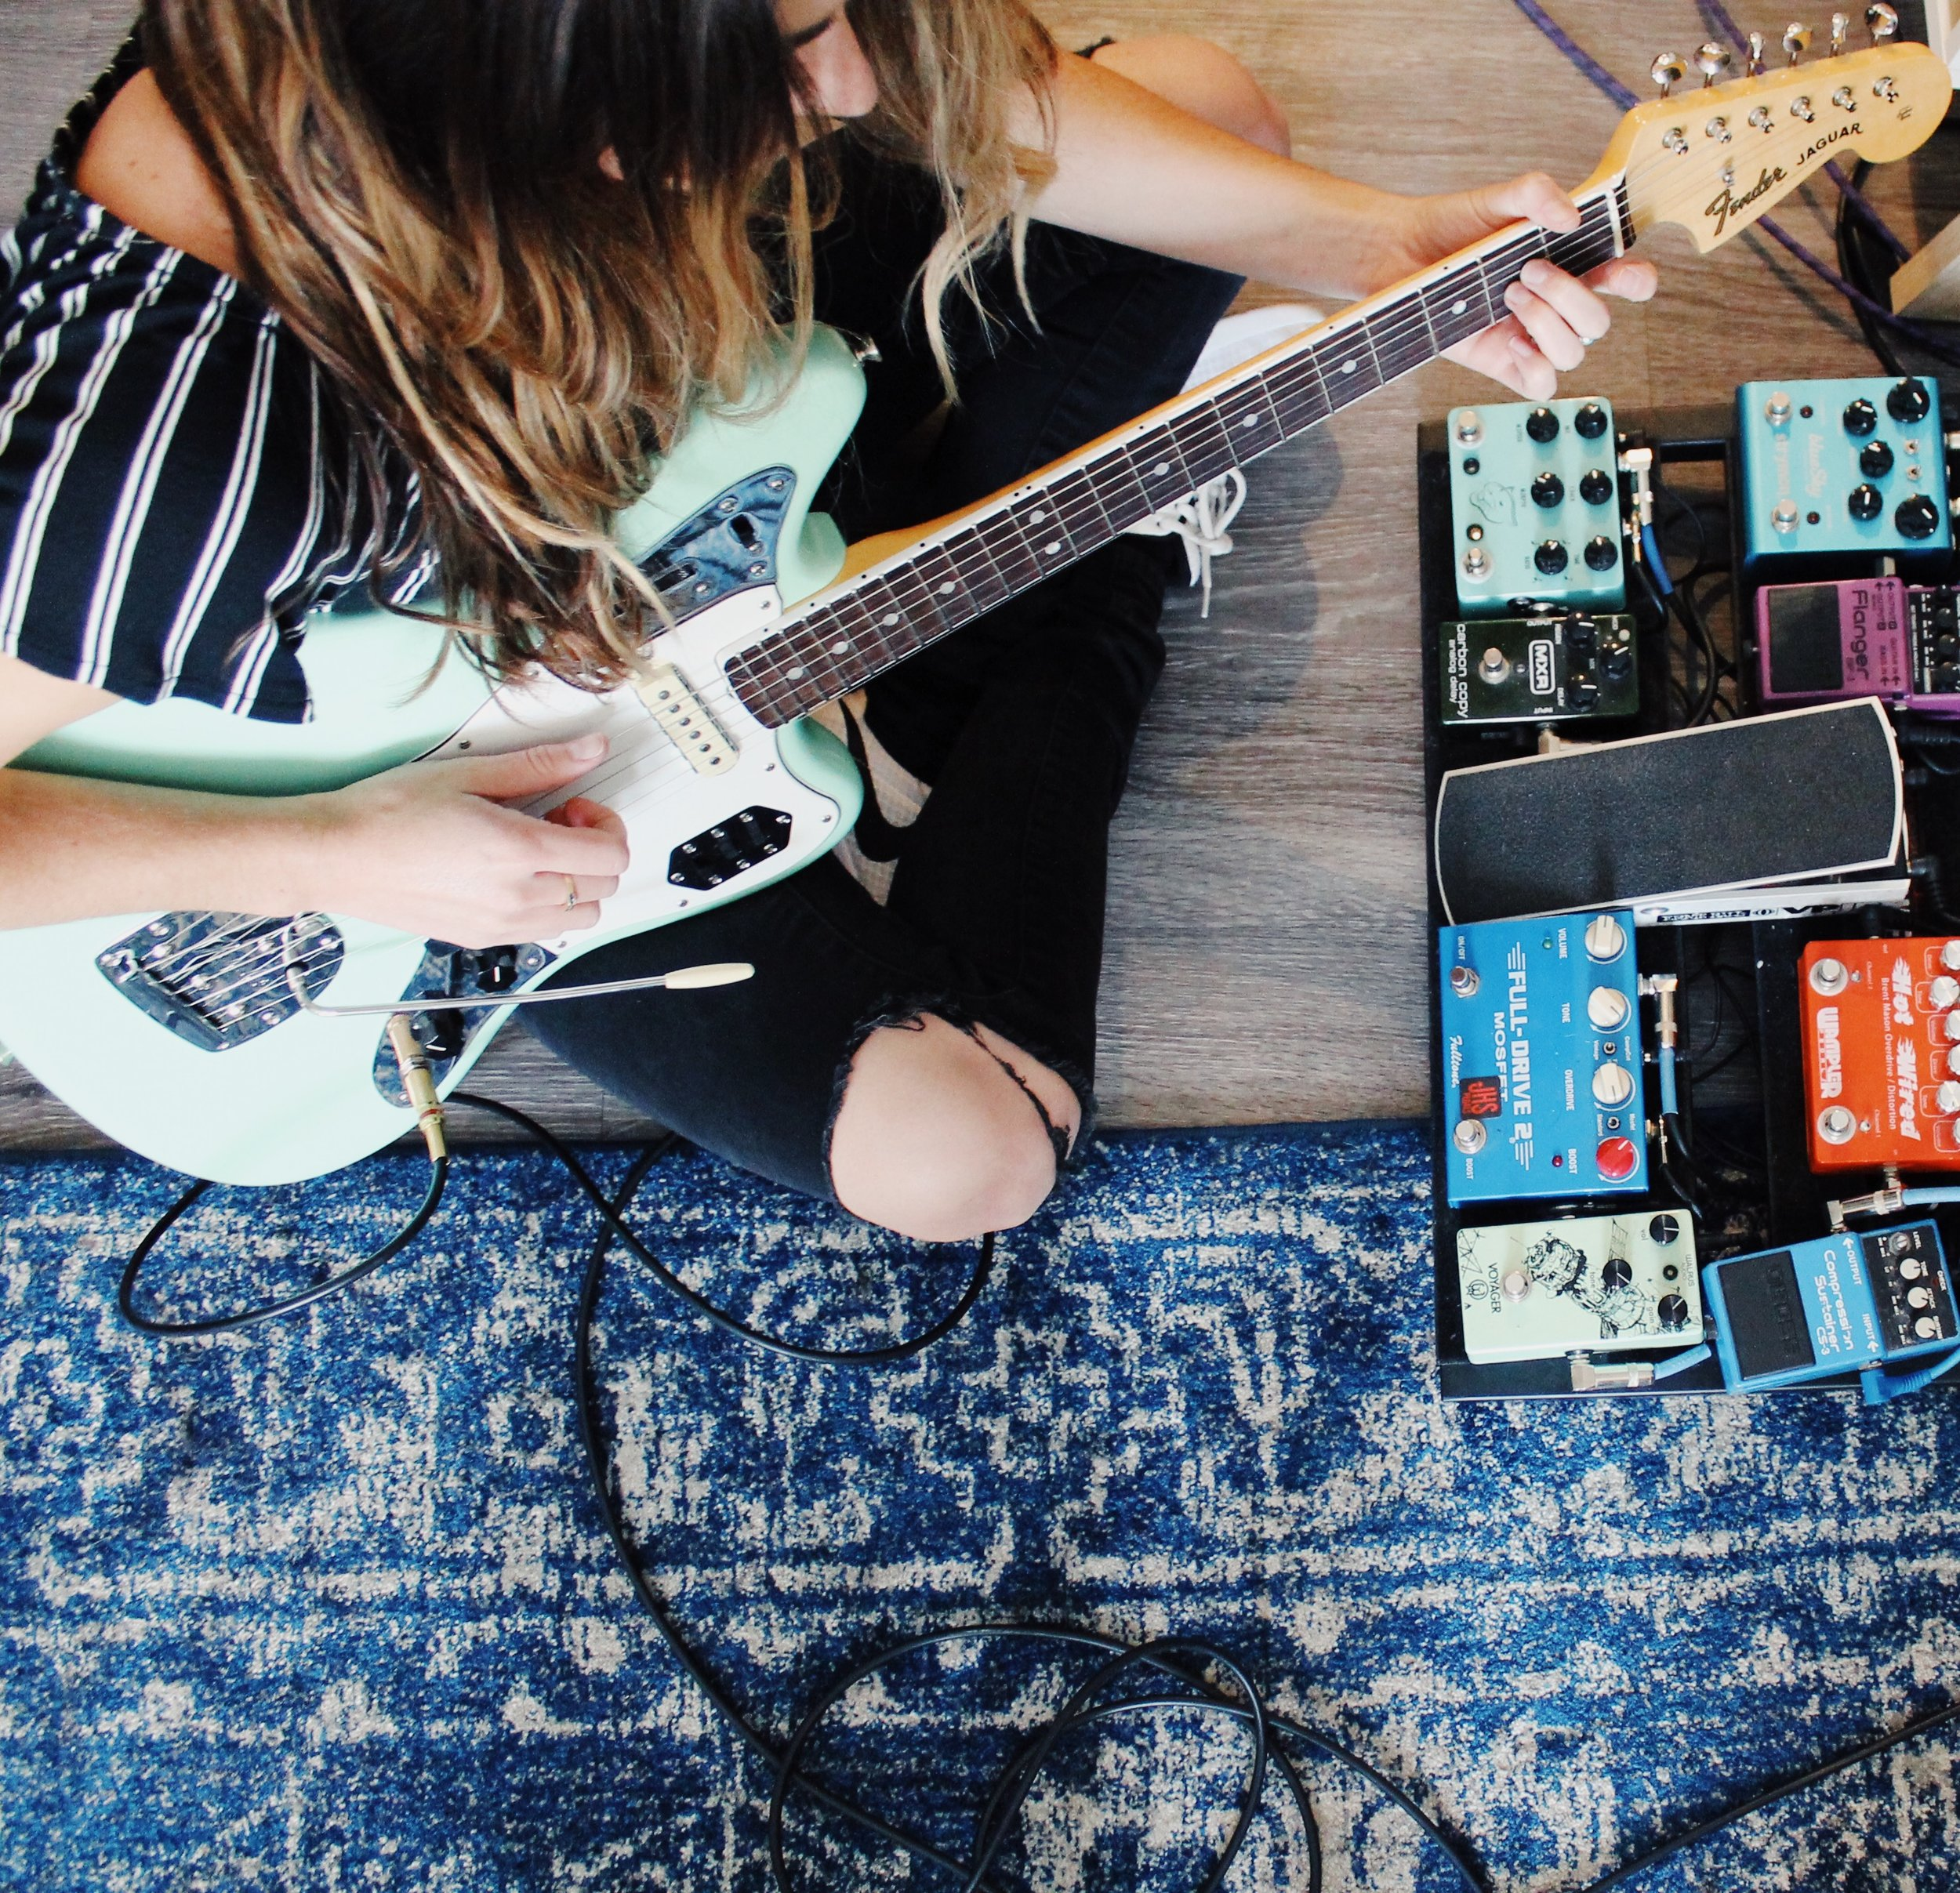 Get Gear Recommendations - Check out my gear guide to learn more about amps, guitars, and pedals!